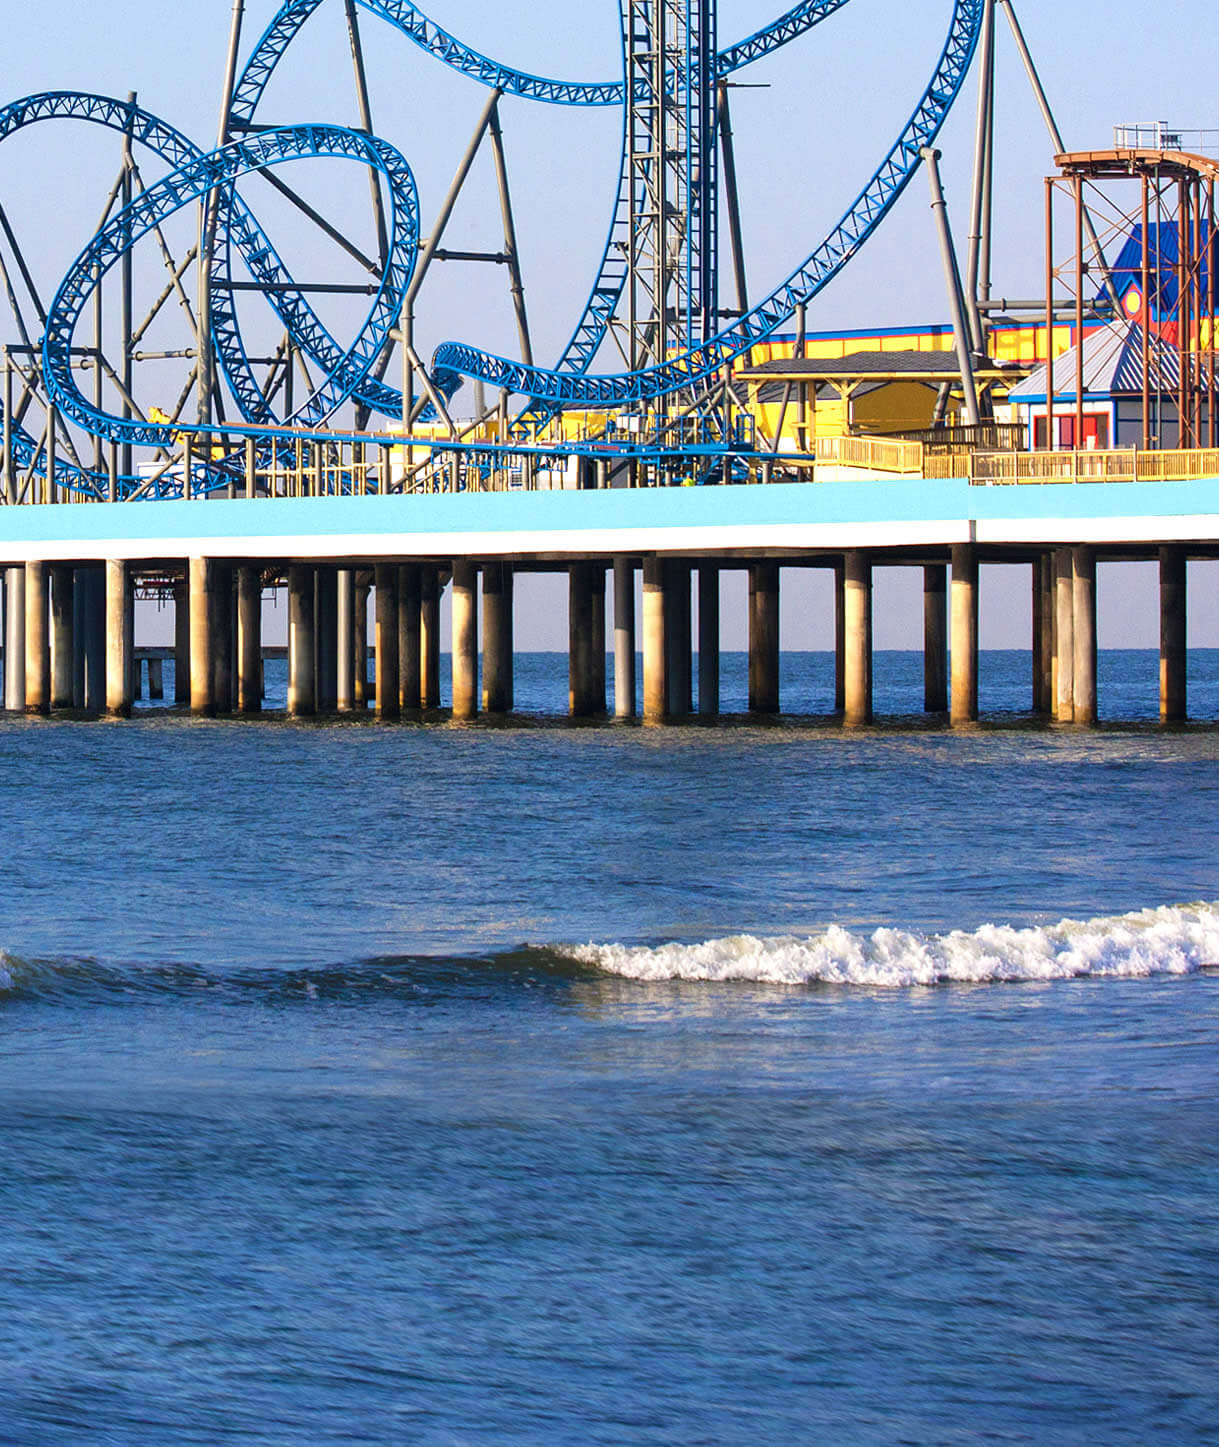 The Peir: Galveston Island Historic Pleasure Pier